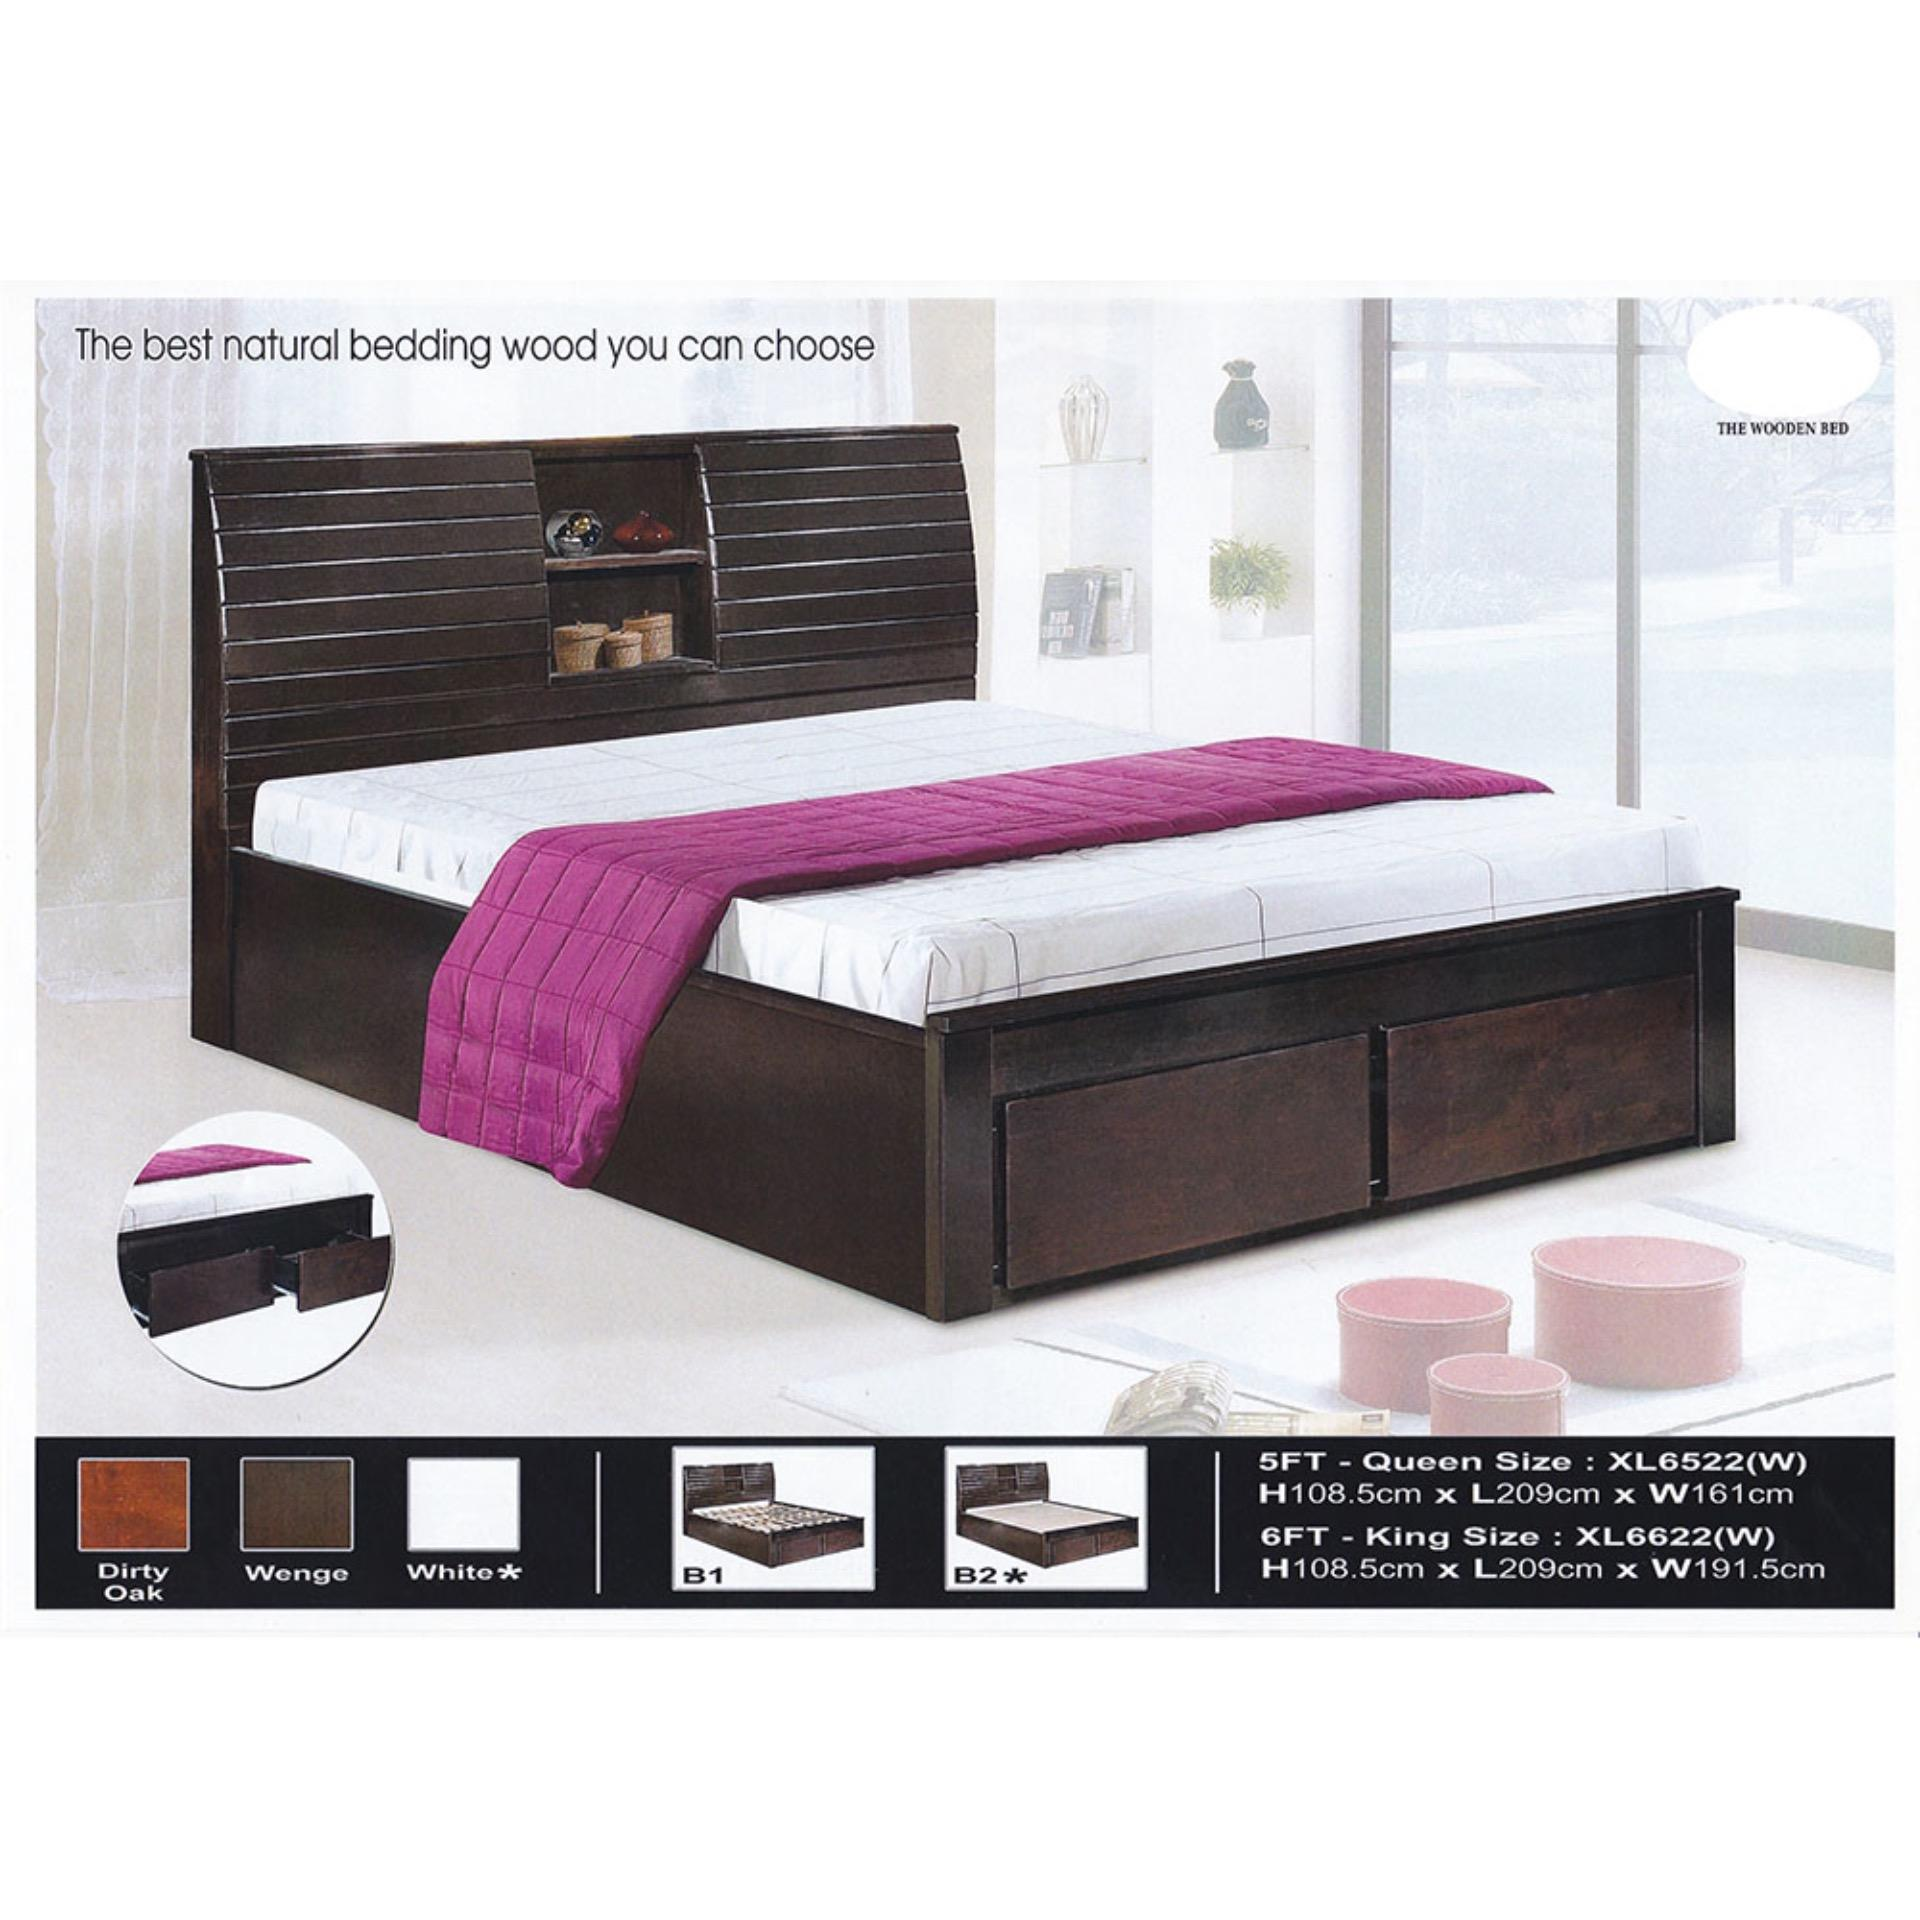 Solid Wood Strong Queen Size Wooden Bed Frame With Headboard Storage 2 Storage Drawers L2150mm X W1610mm X H1085mm Pre Order 2 Week Dark Brown One Size New Pgmall